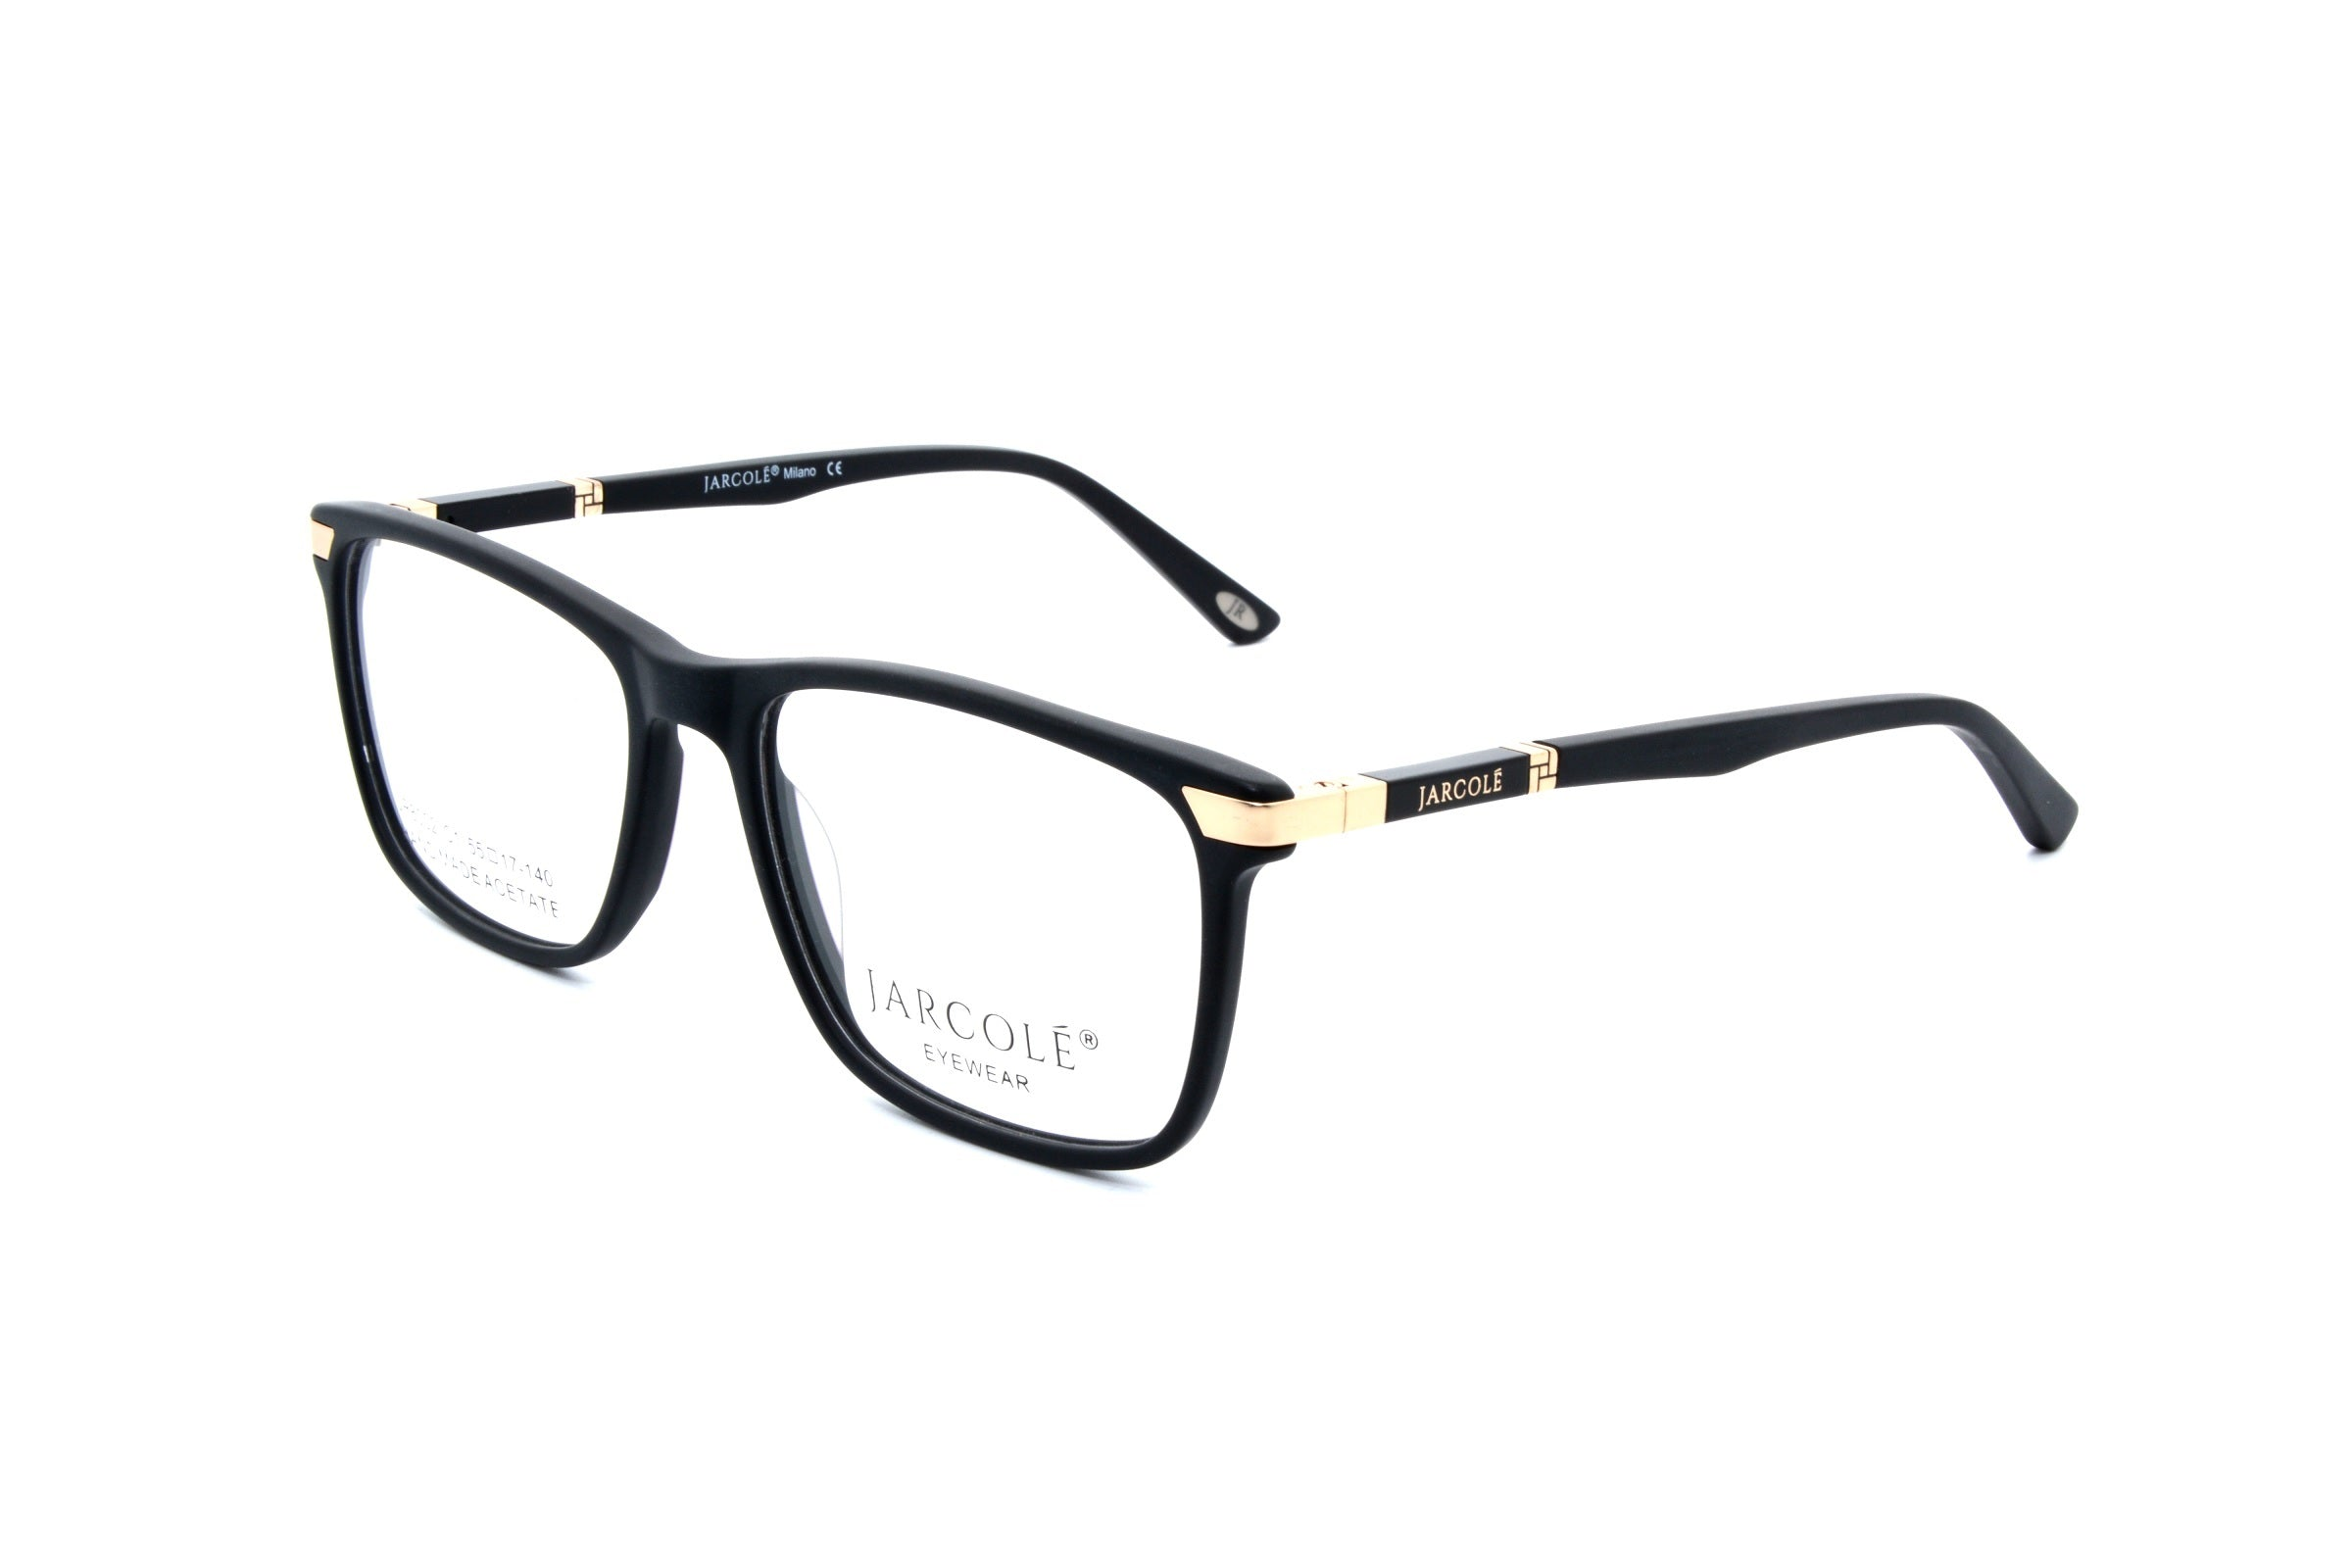 Jarcole eyewear 8002, C1 - Optics Trading